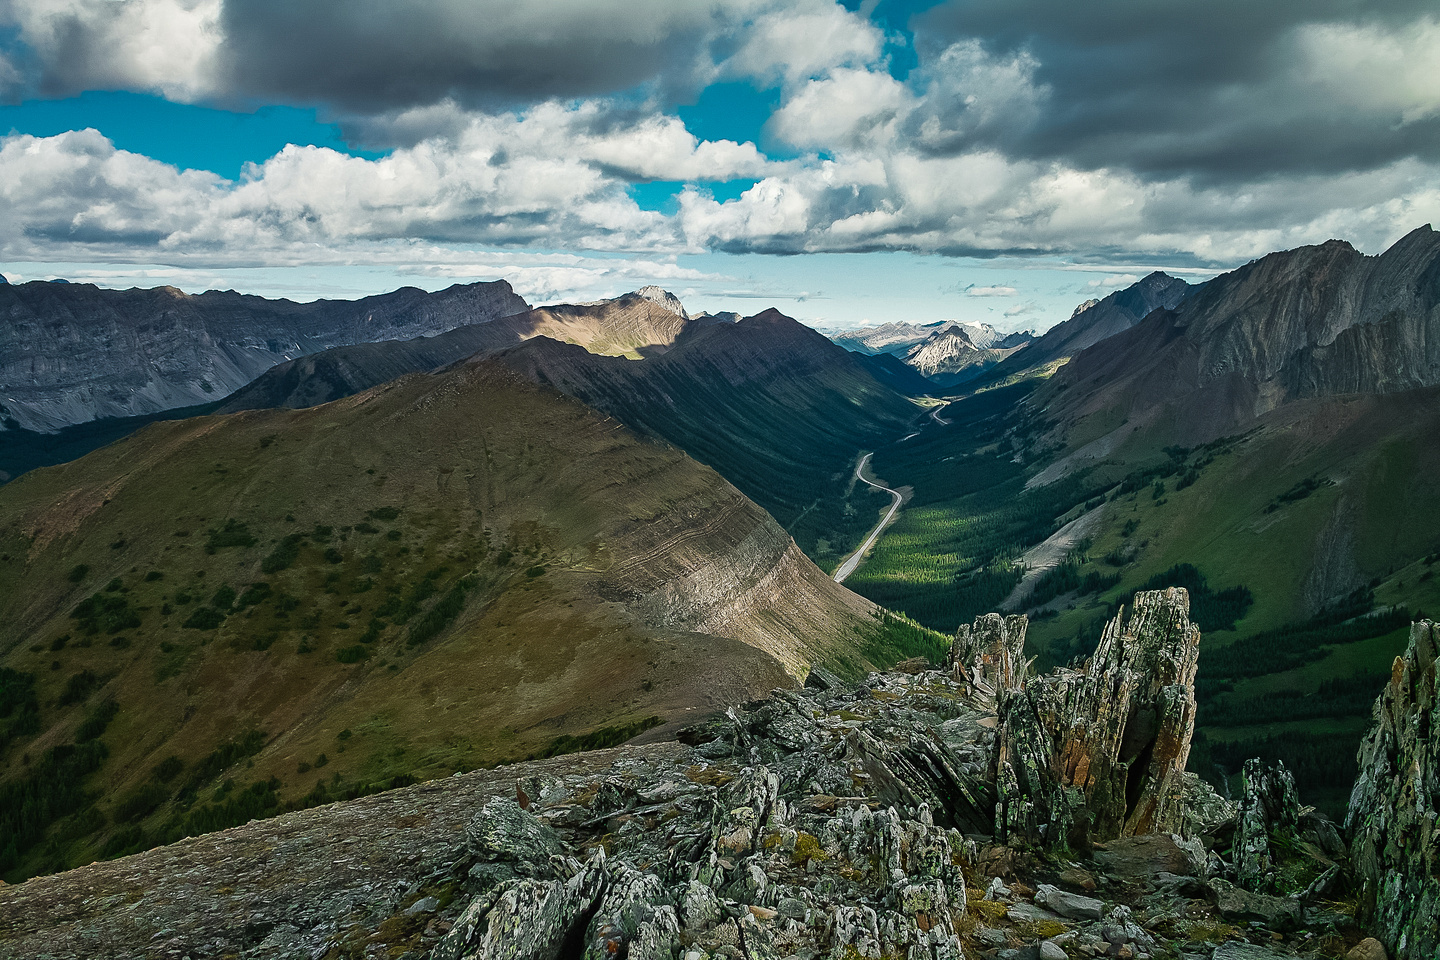 Highwood and Grizzly Ridges at left with Tyrwhitt at far left. Mount Rae in the distance at right.